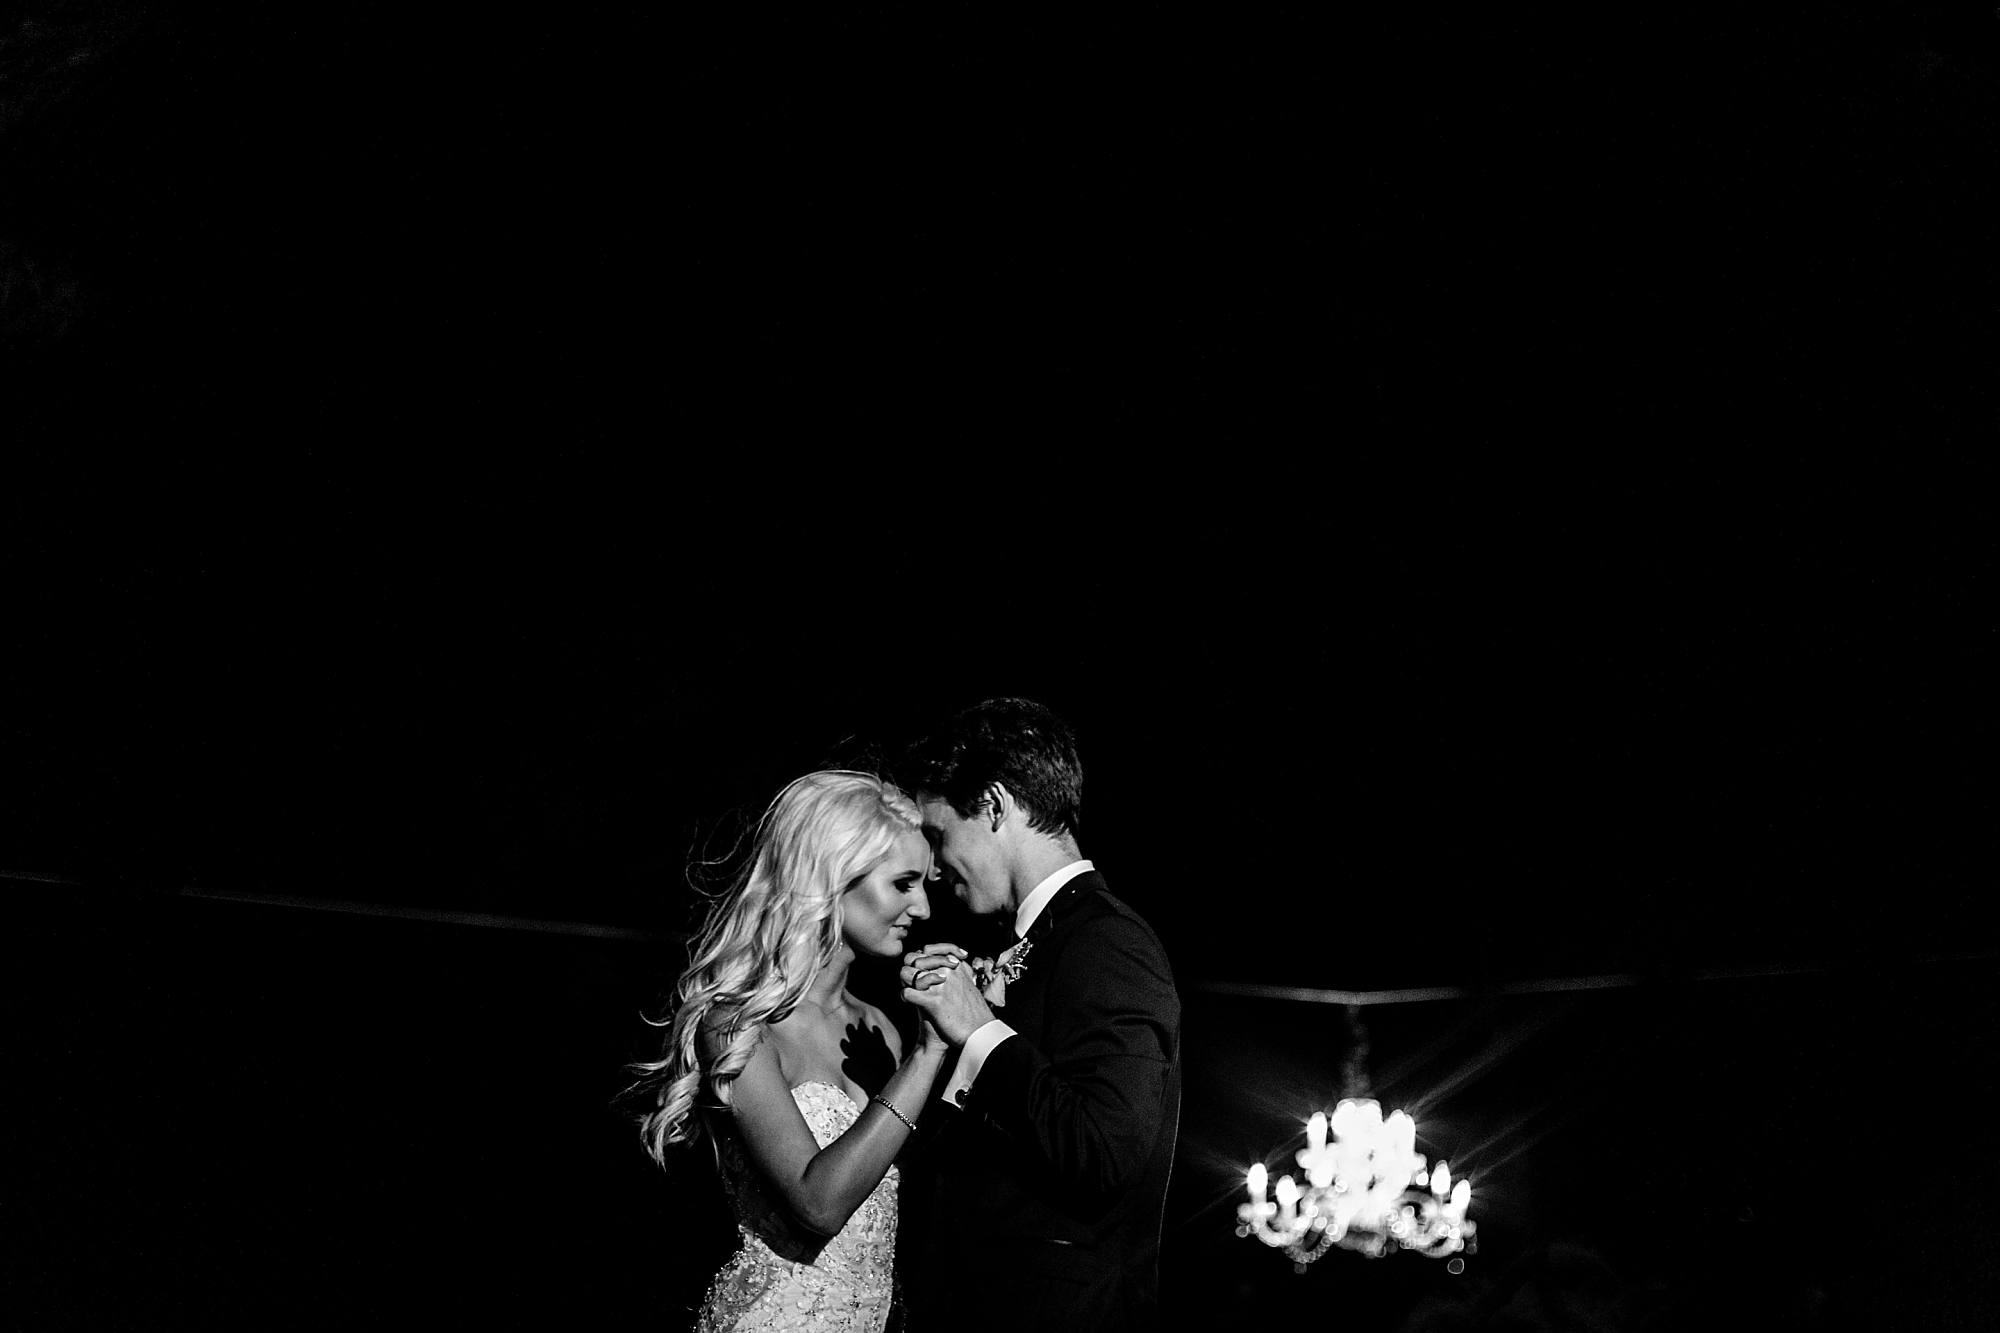 happy bride and groom dancing in the night